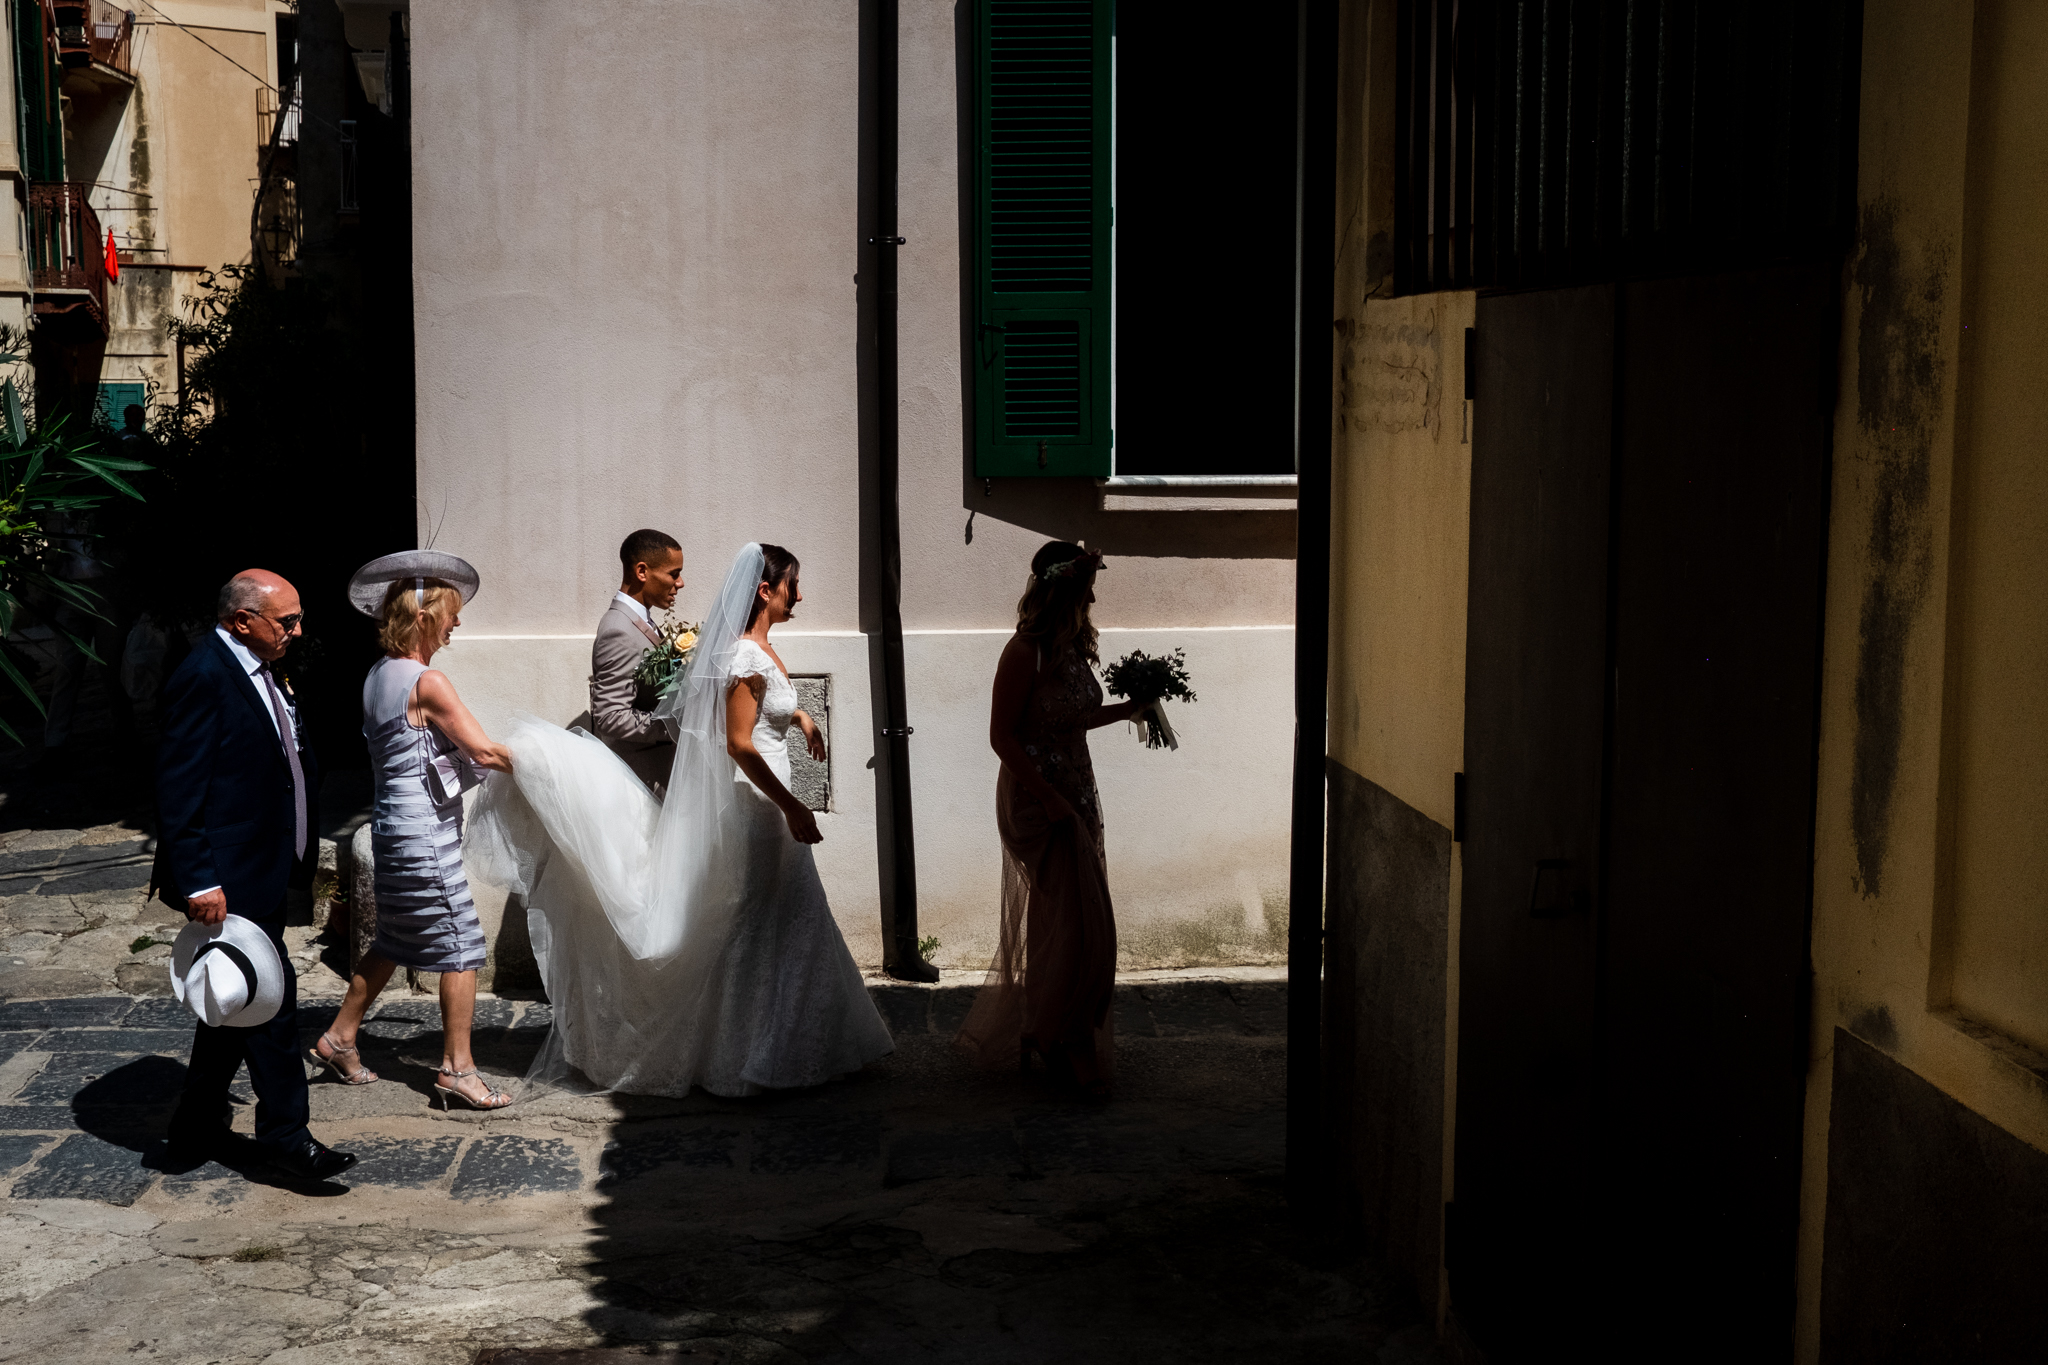 wedding-photography-in-italy-16.jpg